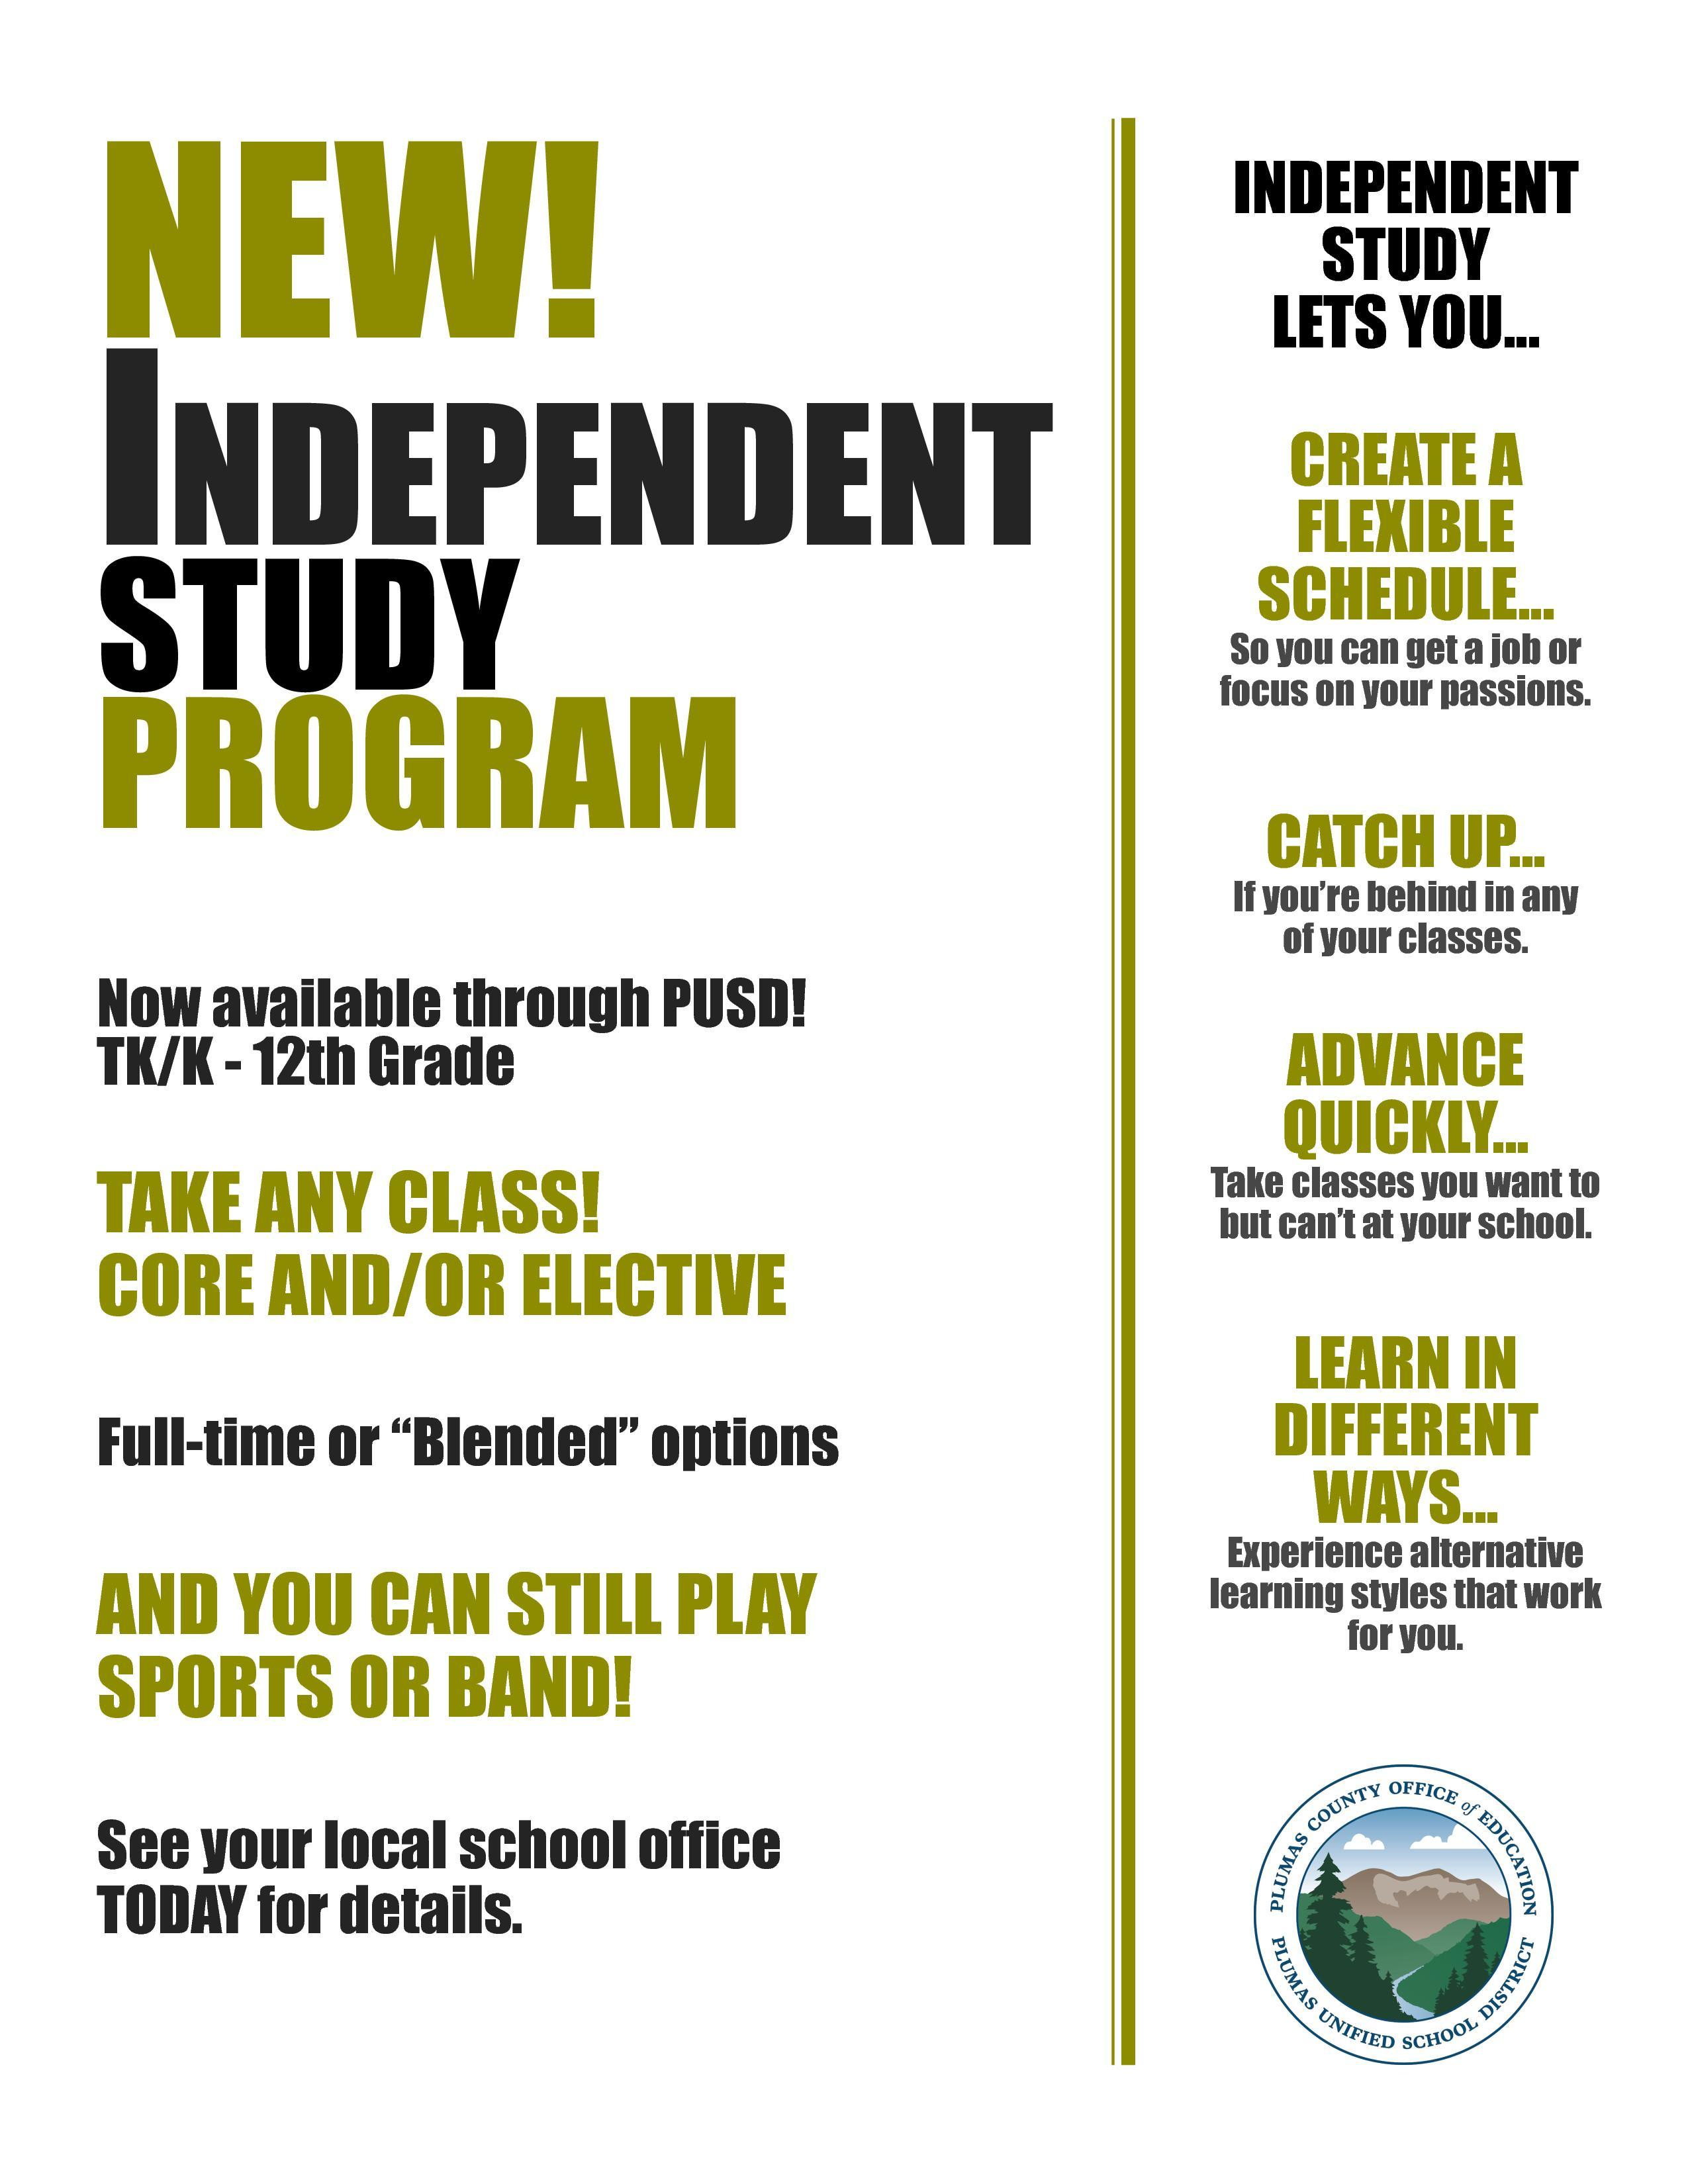 Information on Independent Study